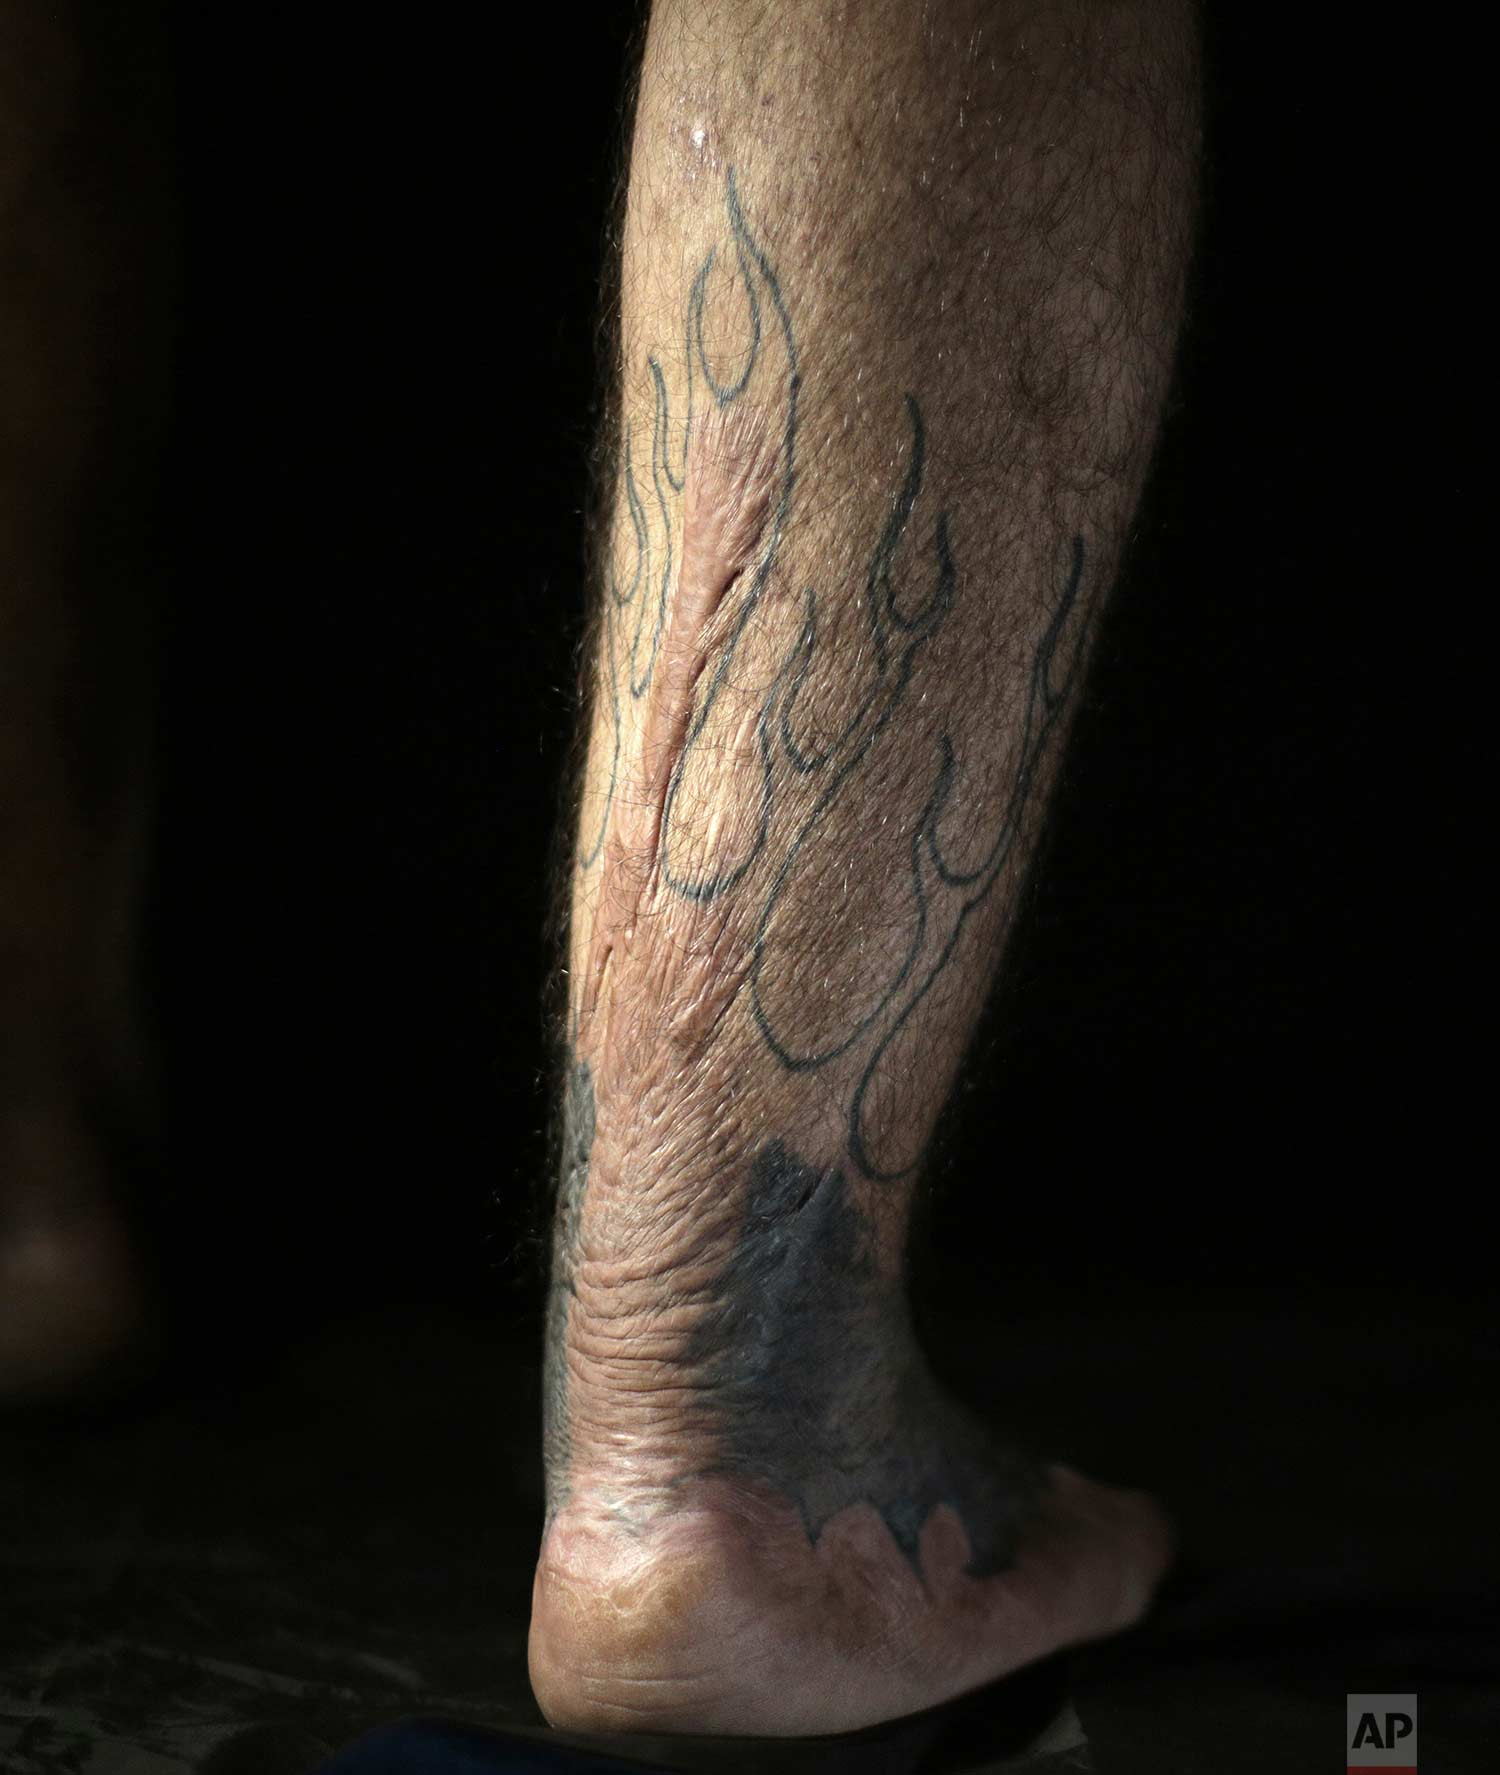 "In this Wednesday. Oct. 24, 2018, photo, Iraqi soldier Saad Khudeir displays a tattoo on his leg to cover scars of the burns he suffered in a car bombing, in Baghdad, Iraq. ""I don't want just to cover my wounds, but also to tell the story behind my physical and emotional ones,"" he said. ""Through Christian icons, I want to say that there is no difference between Muslim and Christians, and the flames explain the fire still raging inside me for my loss,"" he added. (AP Photo/Hadi Mizban)"